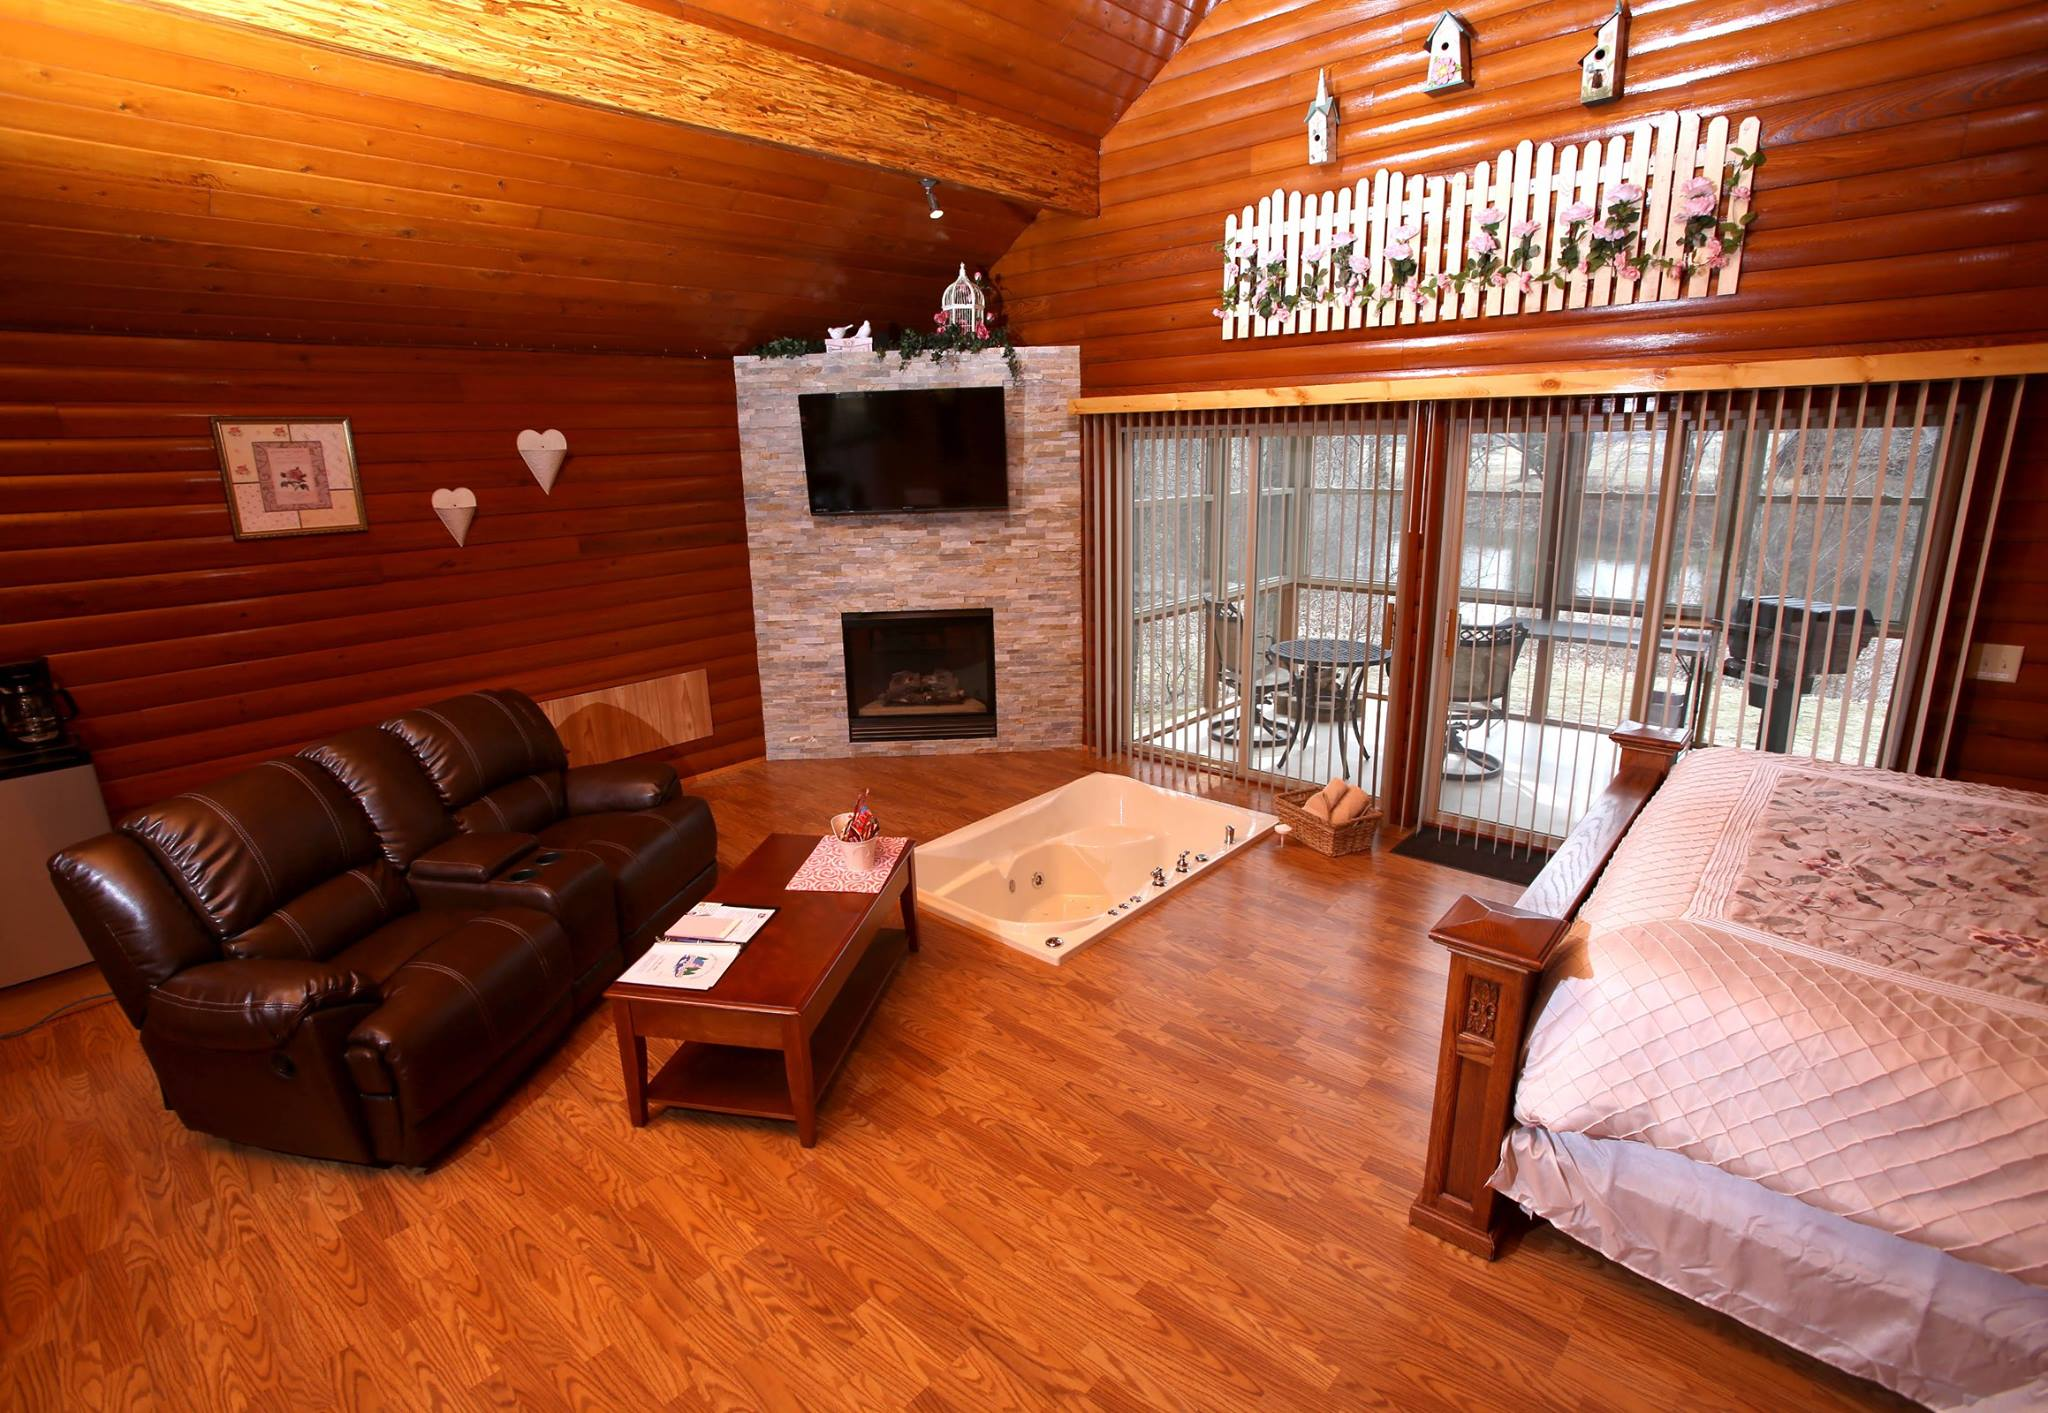 Inside of cabin showing king sized bed, gas fireplace, sunken tub and living area.